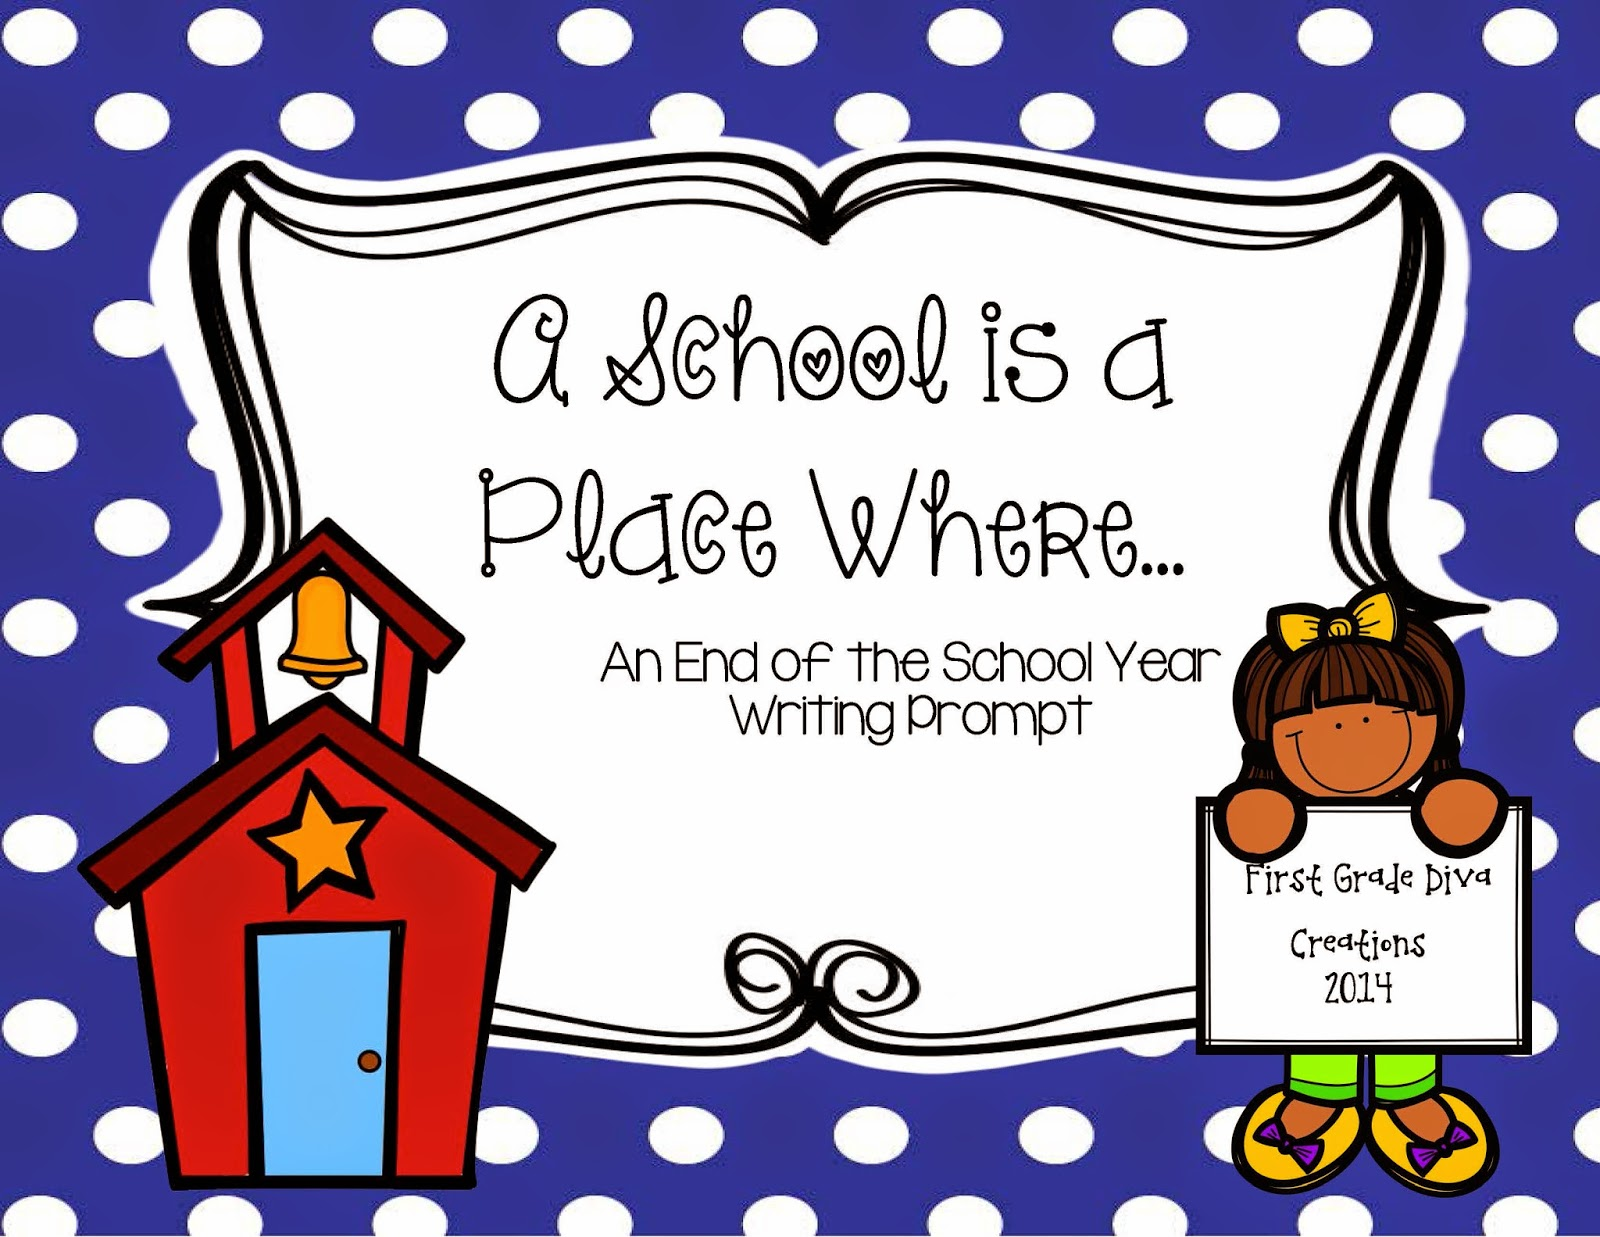 https://www.teacherspayteachers.com/Product/FREEA-School-is-a-Place-WhereA-Printable-End-of-the-Year-Writing-Resource-1236399